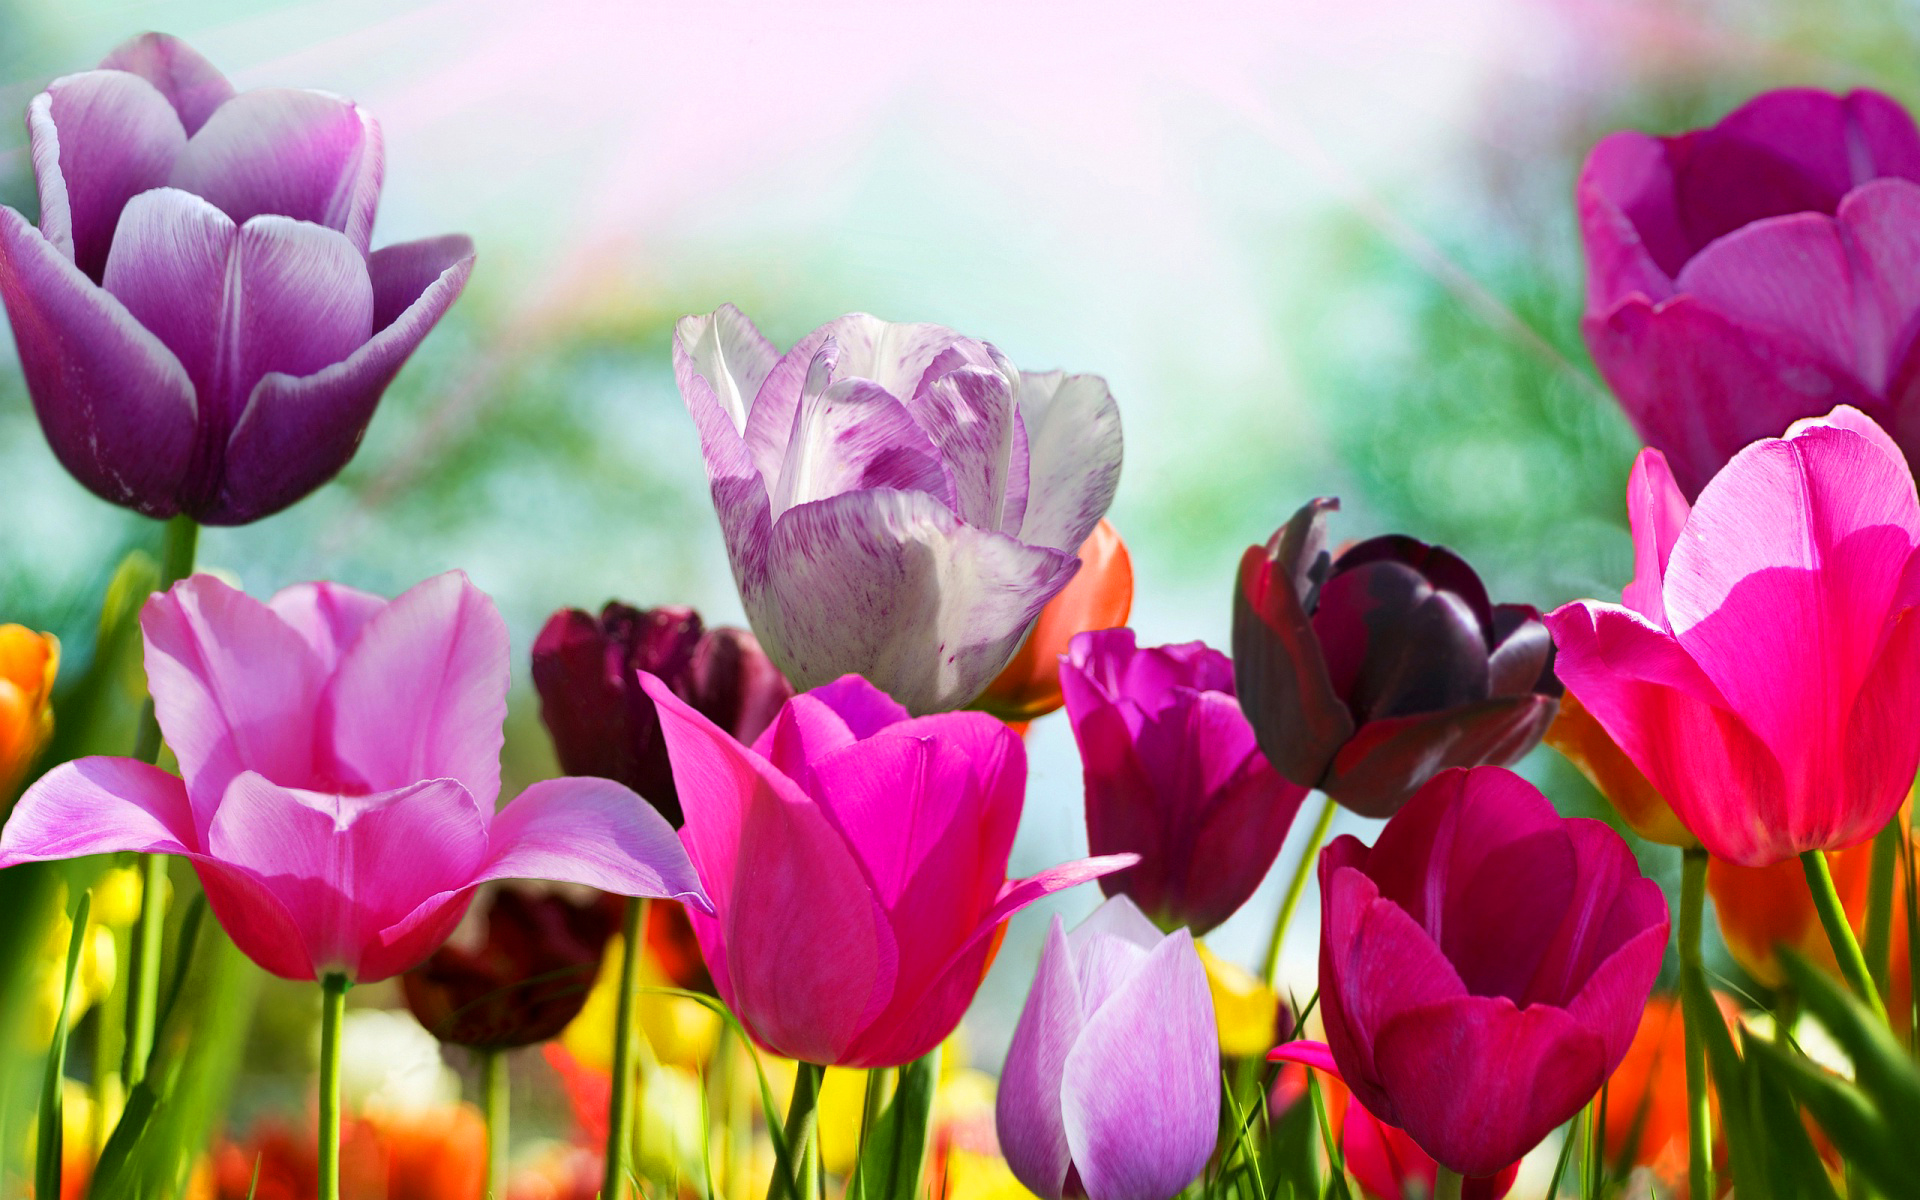 Spring Flowers PC Wallpaper 1920x1200 1920x1200